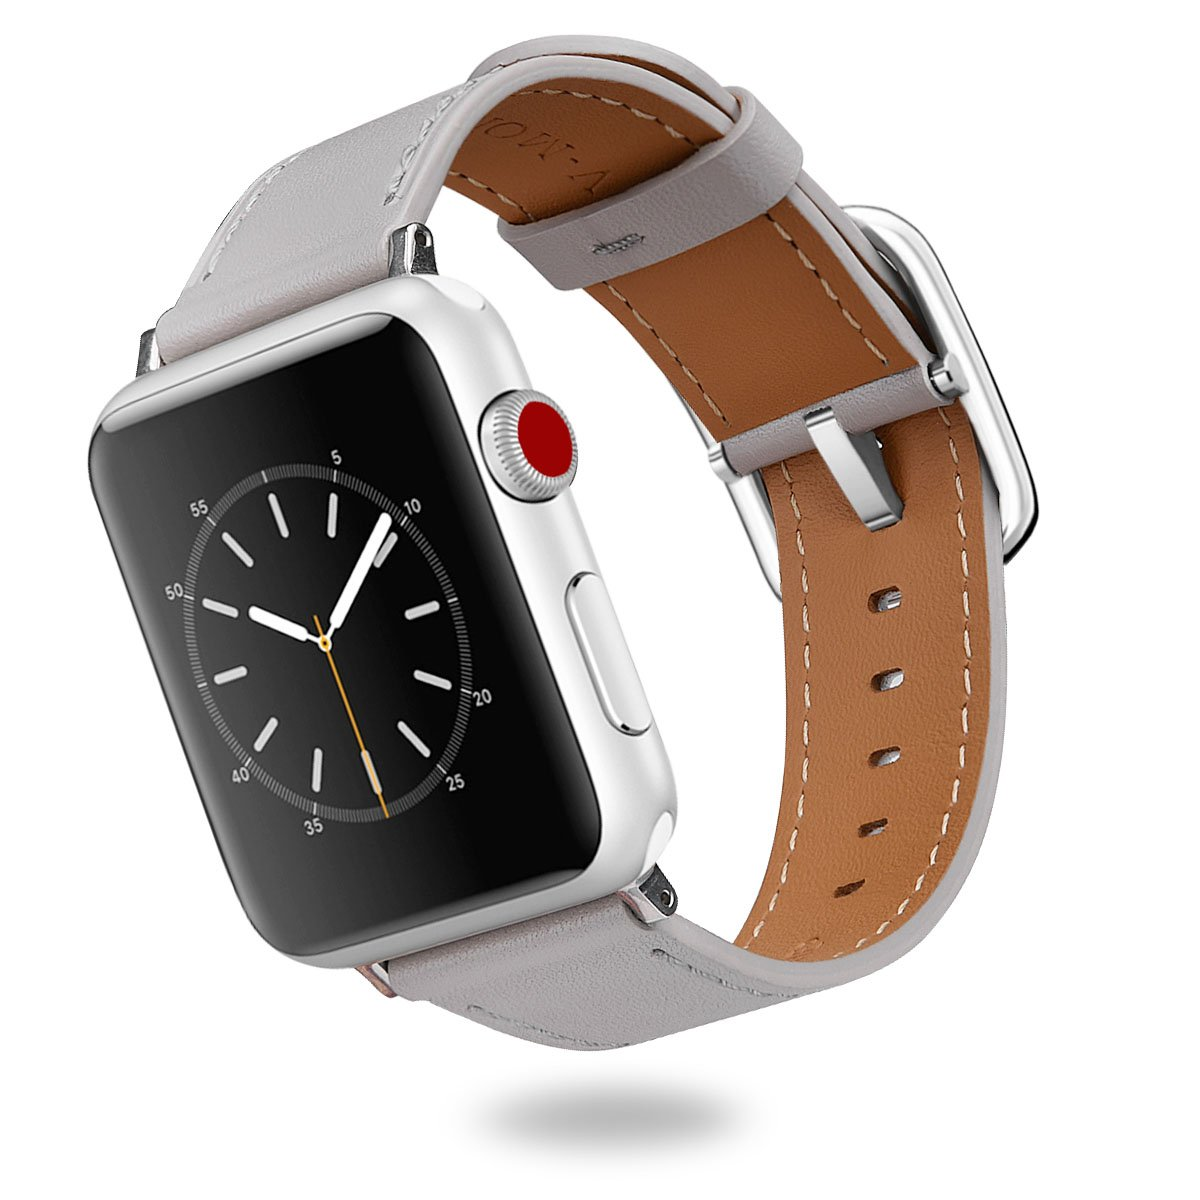 for Apple Watch Bands 38MM, V-MORO Softer Genuine Leather iWatch Band Replacement Cuff Bracelet Strap with Special Stainless Steel Buckle for Apple Watch Series 3/2/1 Sport Edition 38mm Men Women Gray